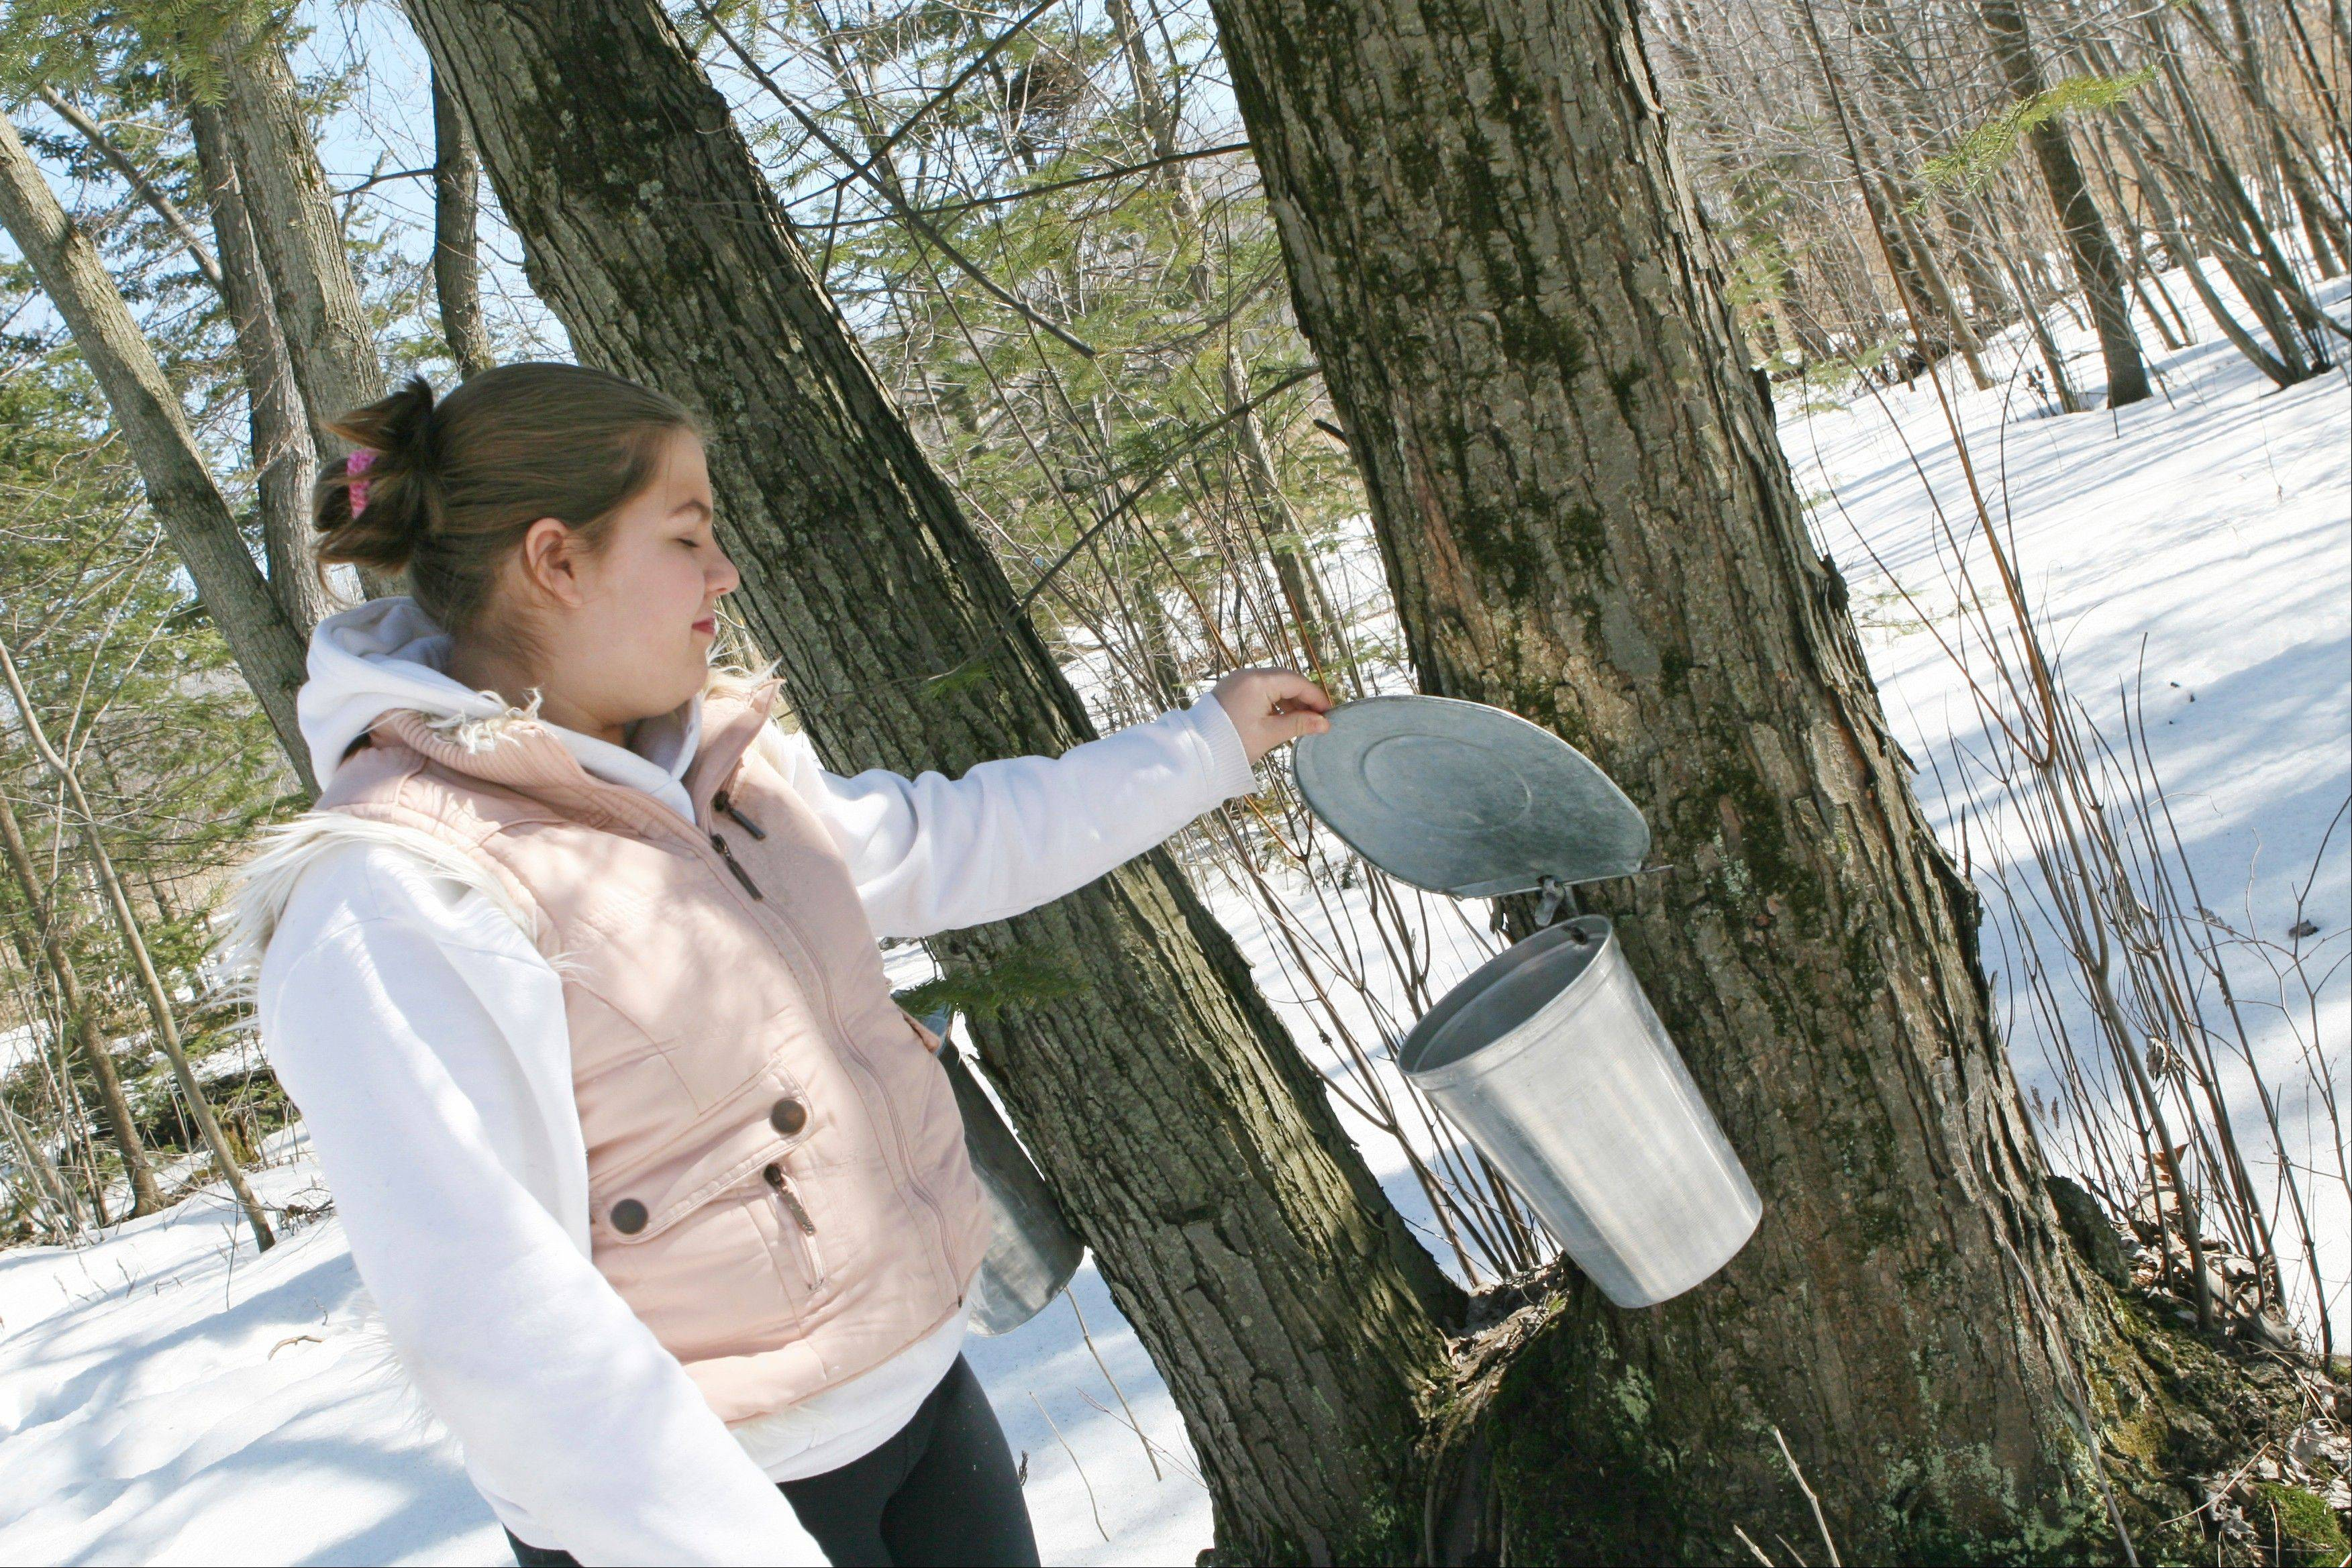 Take a one-hour hike to learn how the sap of maple trees becomes maple syrup at the Maple Syrup Hike in Ryerson Woods in Riverwoods.